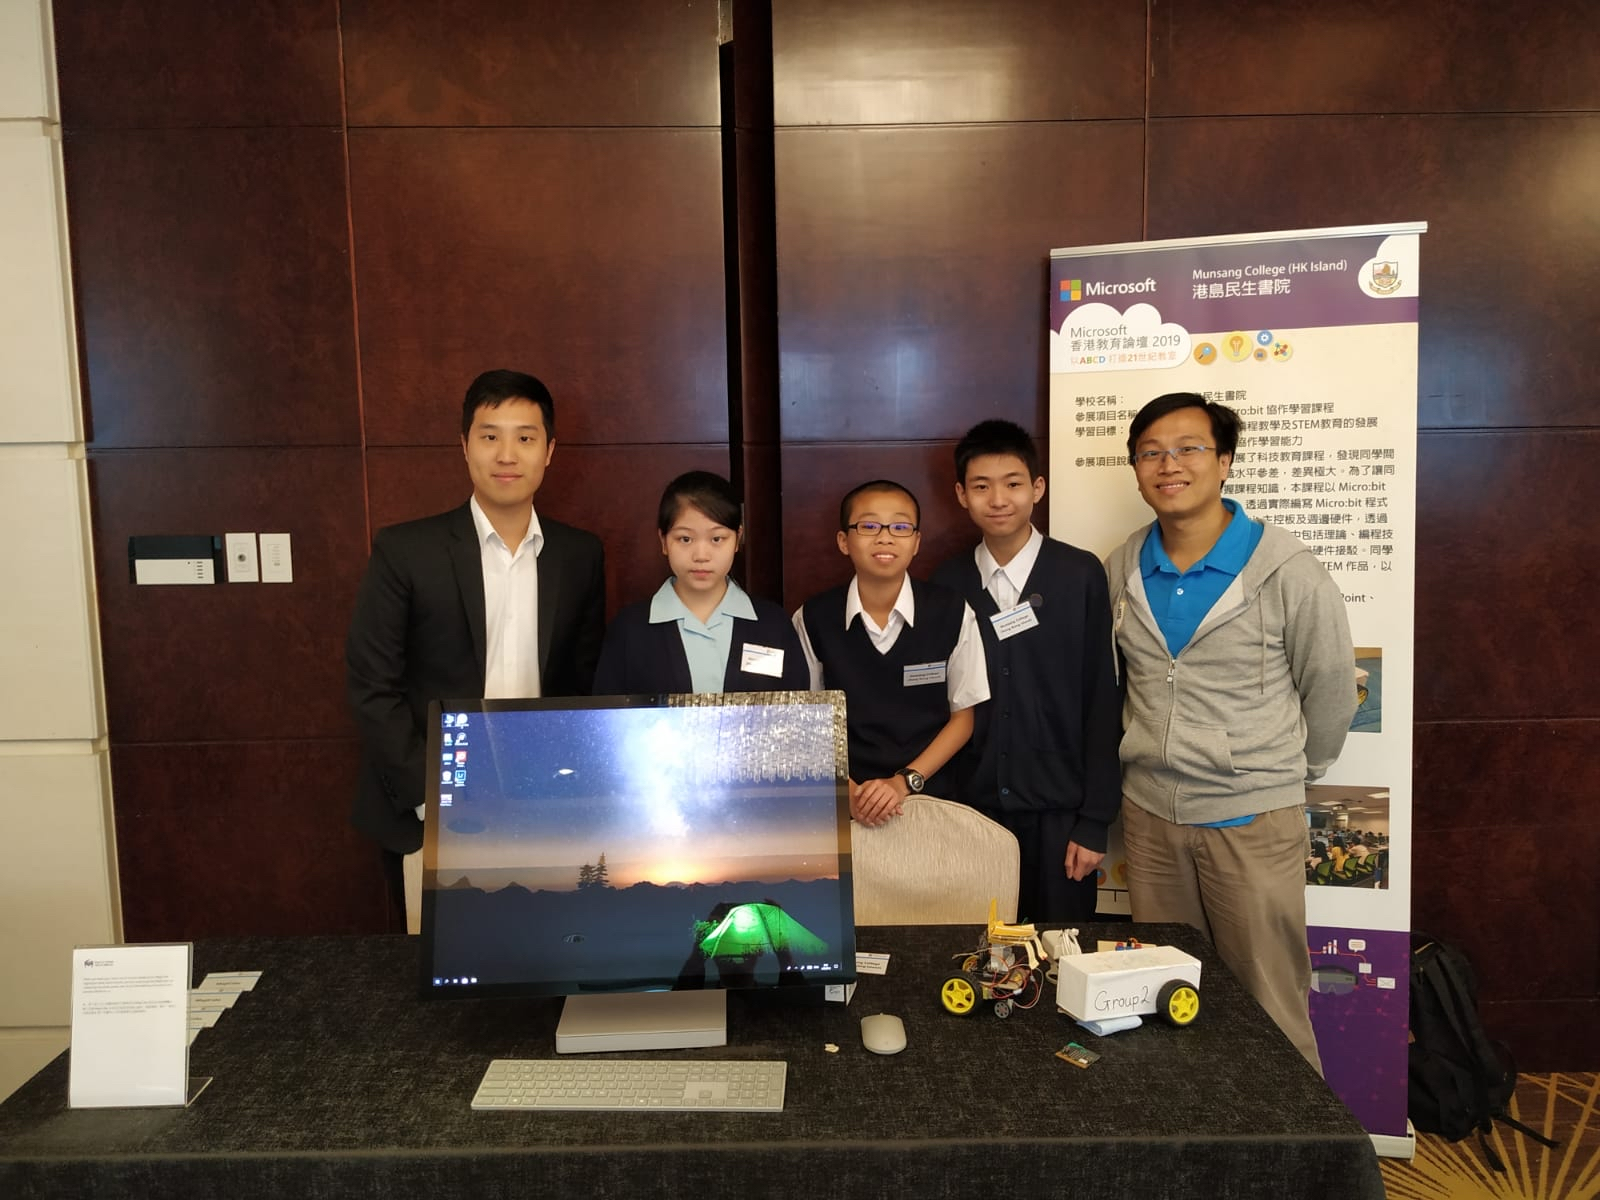 Una x IMSC booth in Microsoft Education Fair 4